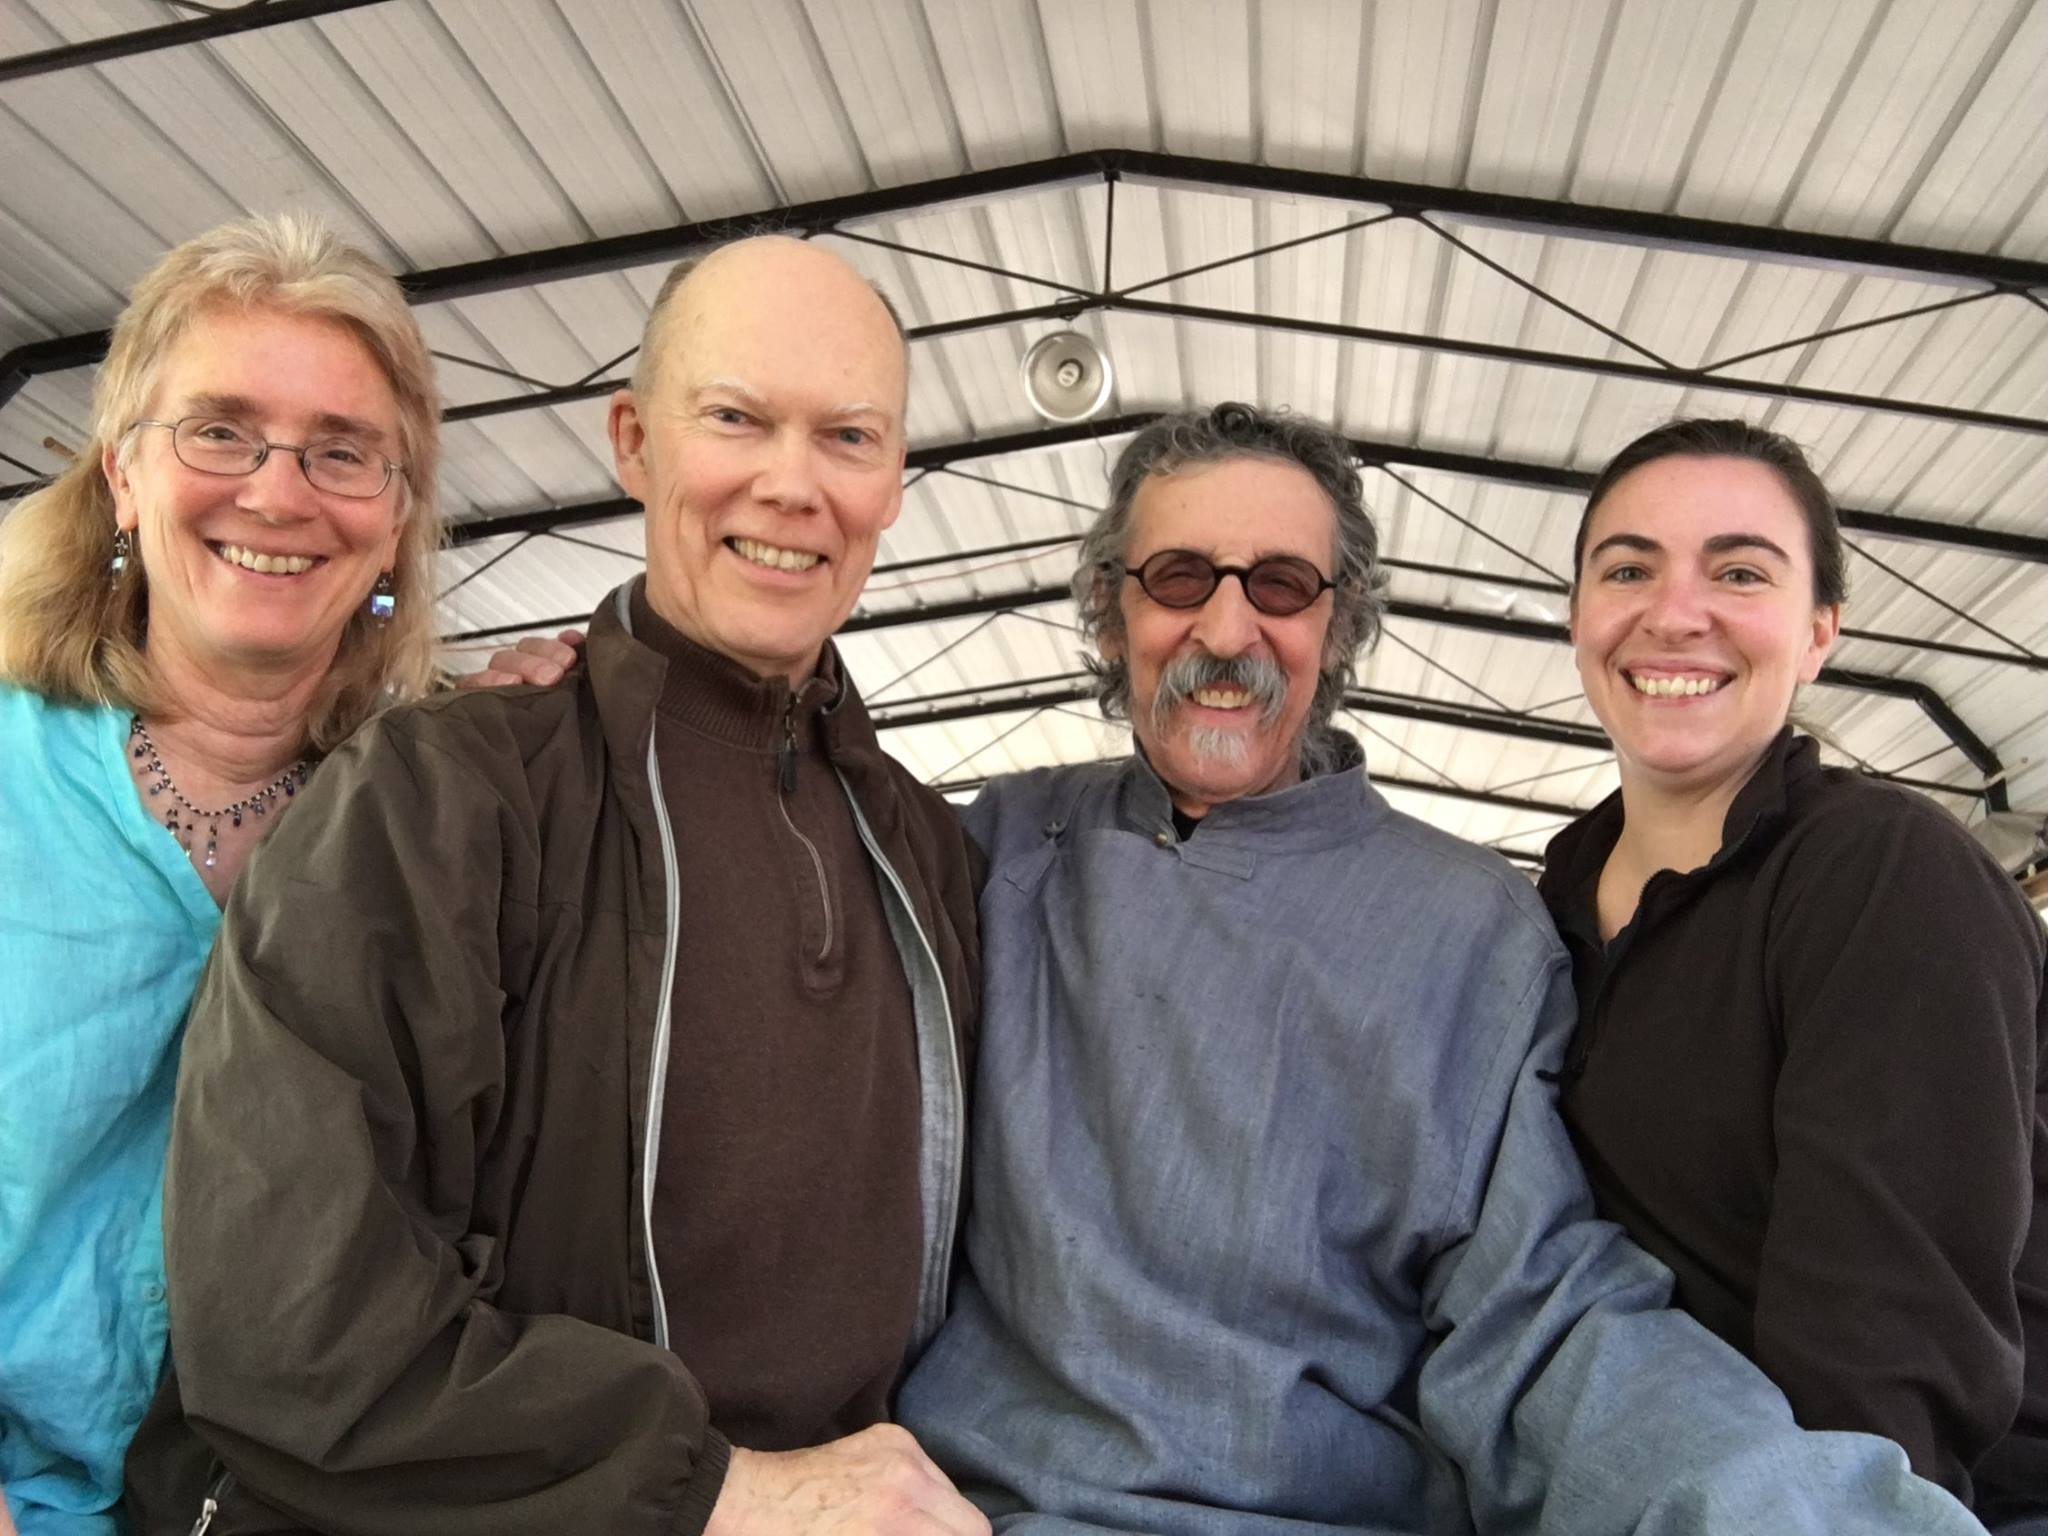 Kathleen Cusak, Dr. jay Dunbar, LaoMa and Violet Anderson at the beginning of Black Bamboo Pavilion Taijiquan School